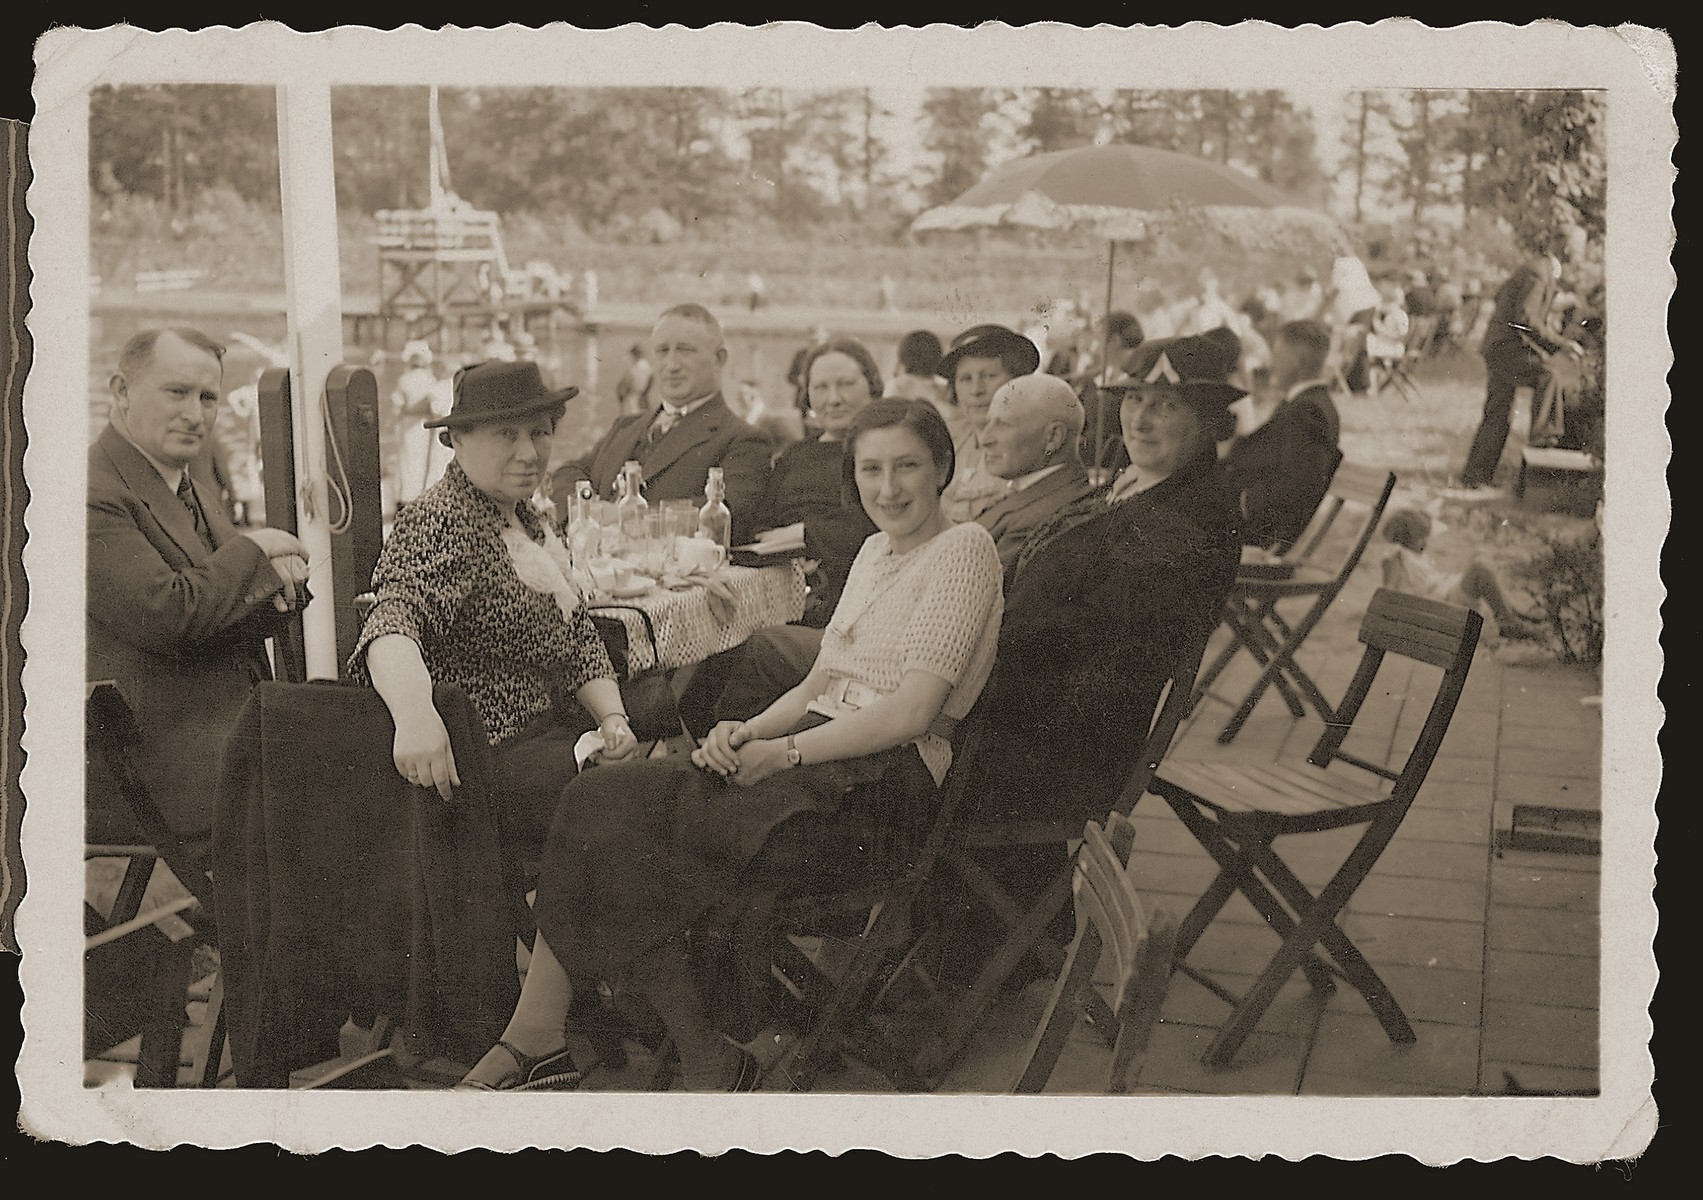 The Meijer family sits outside at a cafe during a Sunday outing.  Pictured counter-clockwise are Bep Meyer (front, right); Hennie Meijer Meijer; Joseph Meijer; Na Meijer Berg; Hedwig Meijer Neuman; Joseph Meijer (another); Johny Meijer; and Lina Meijer Neuman.